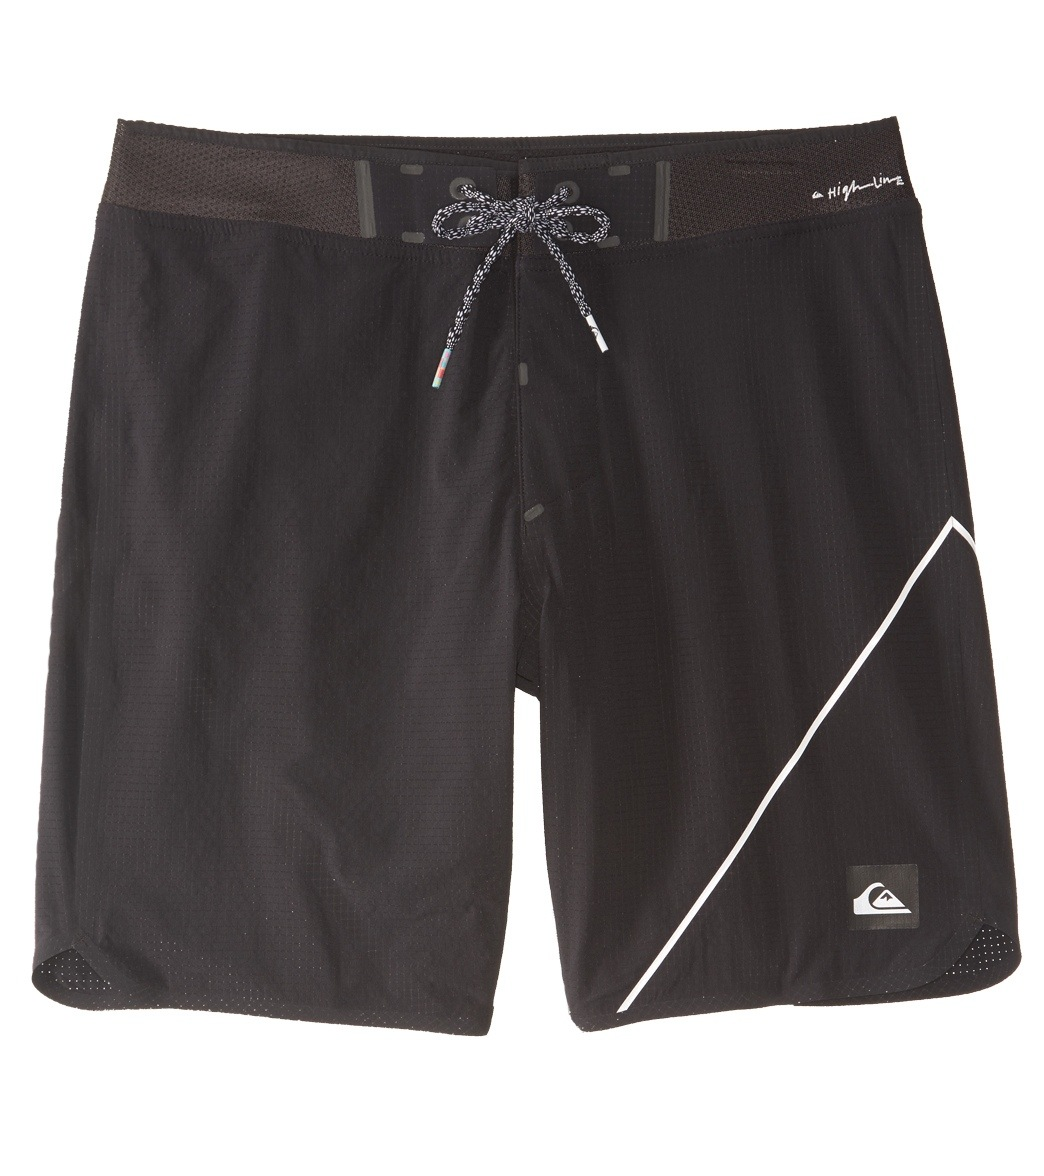 5c61f73723 Quiksilver Men's New Wave Highline 19 Boardshort at SwimOutlet.com - Free  Shipping